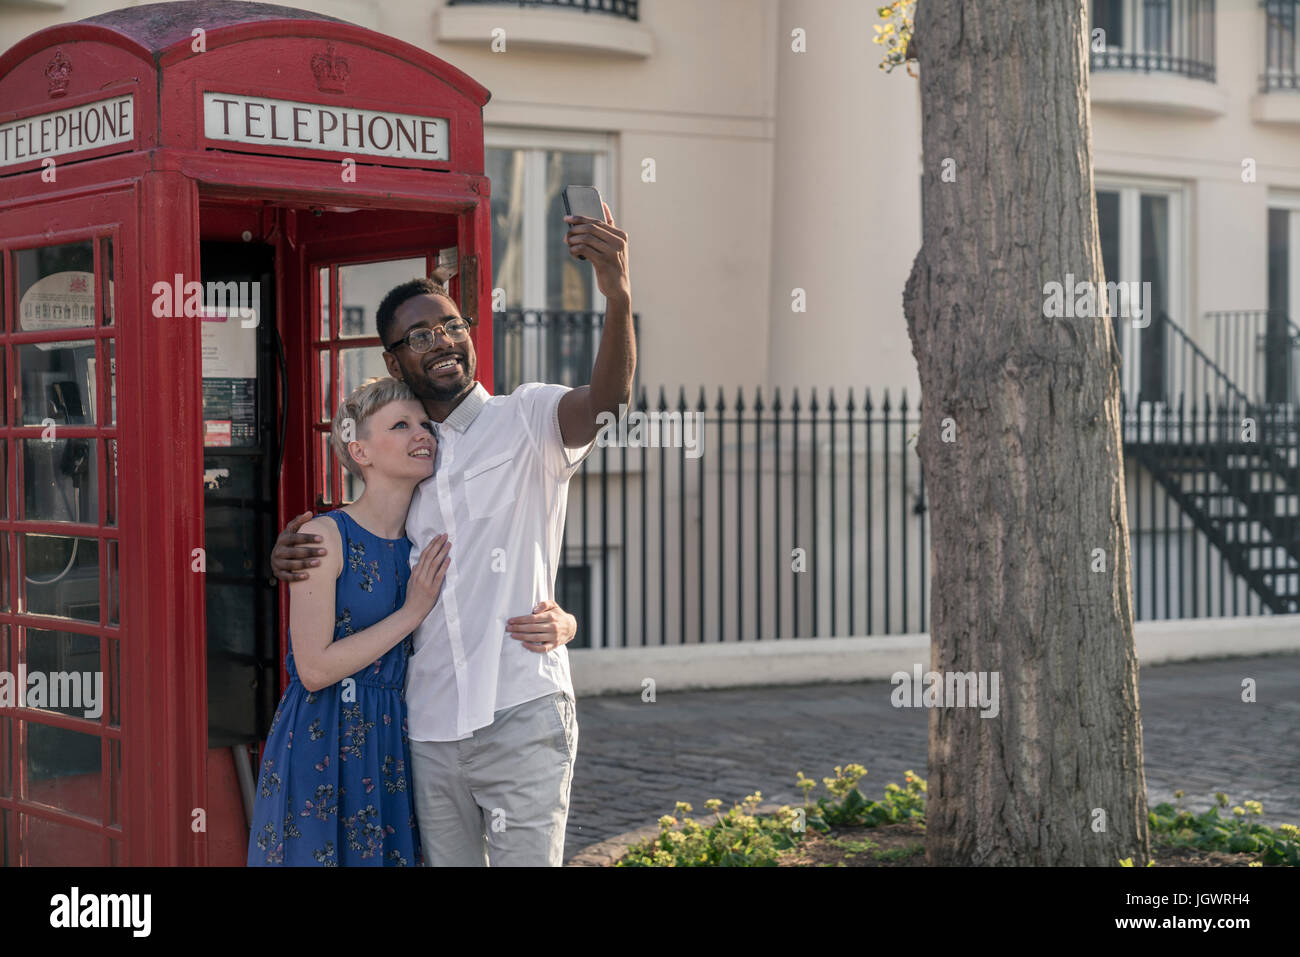 Young couple standing beside red telephone box, looking up, smiling - Stock Image